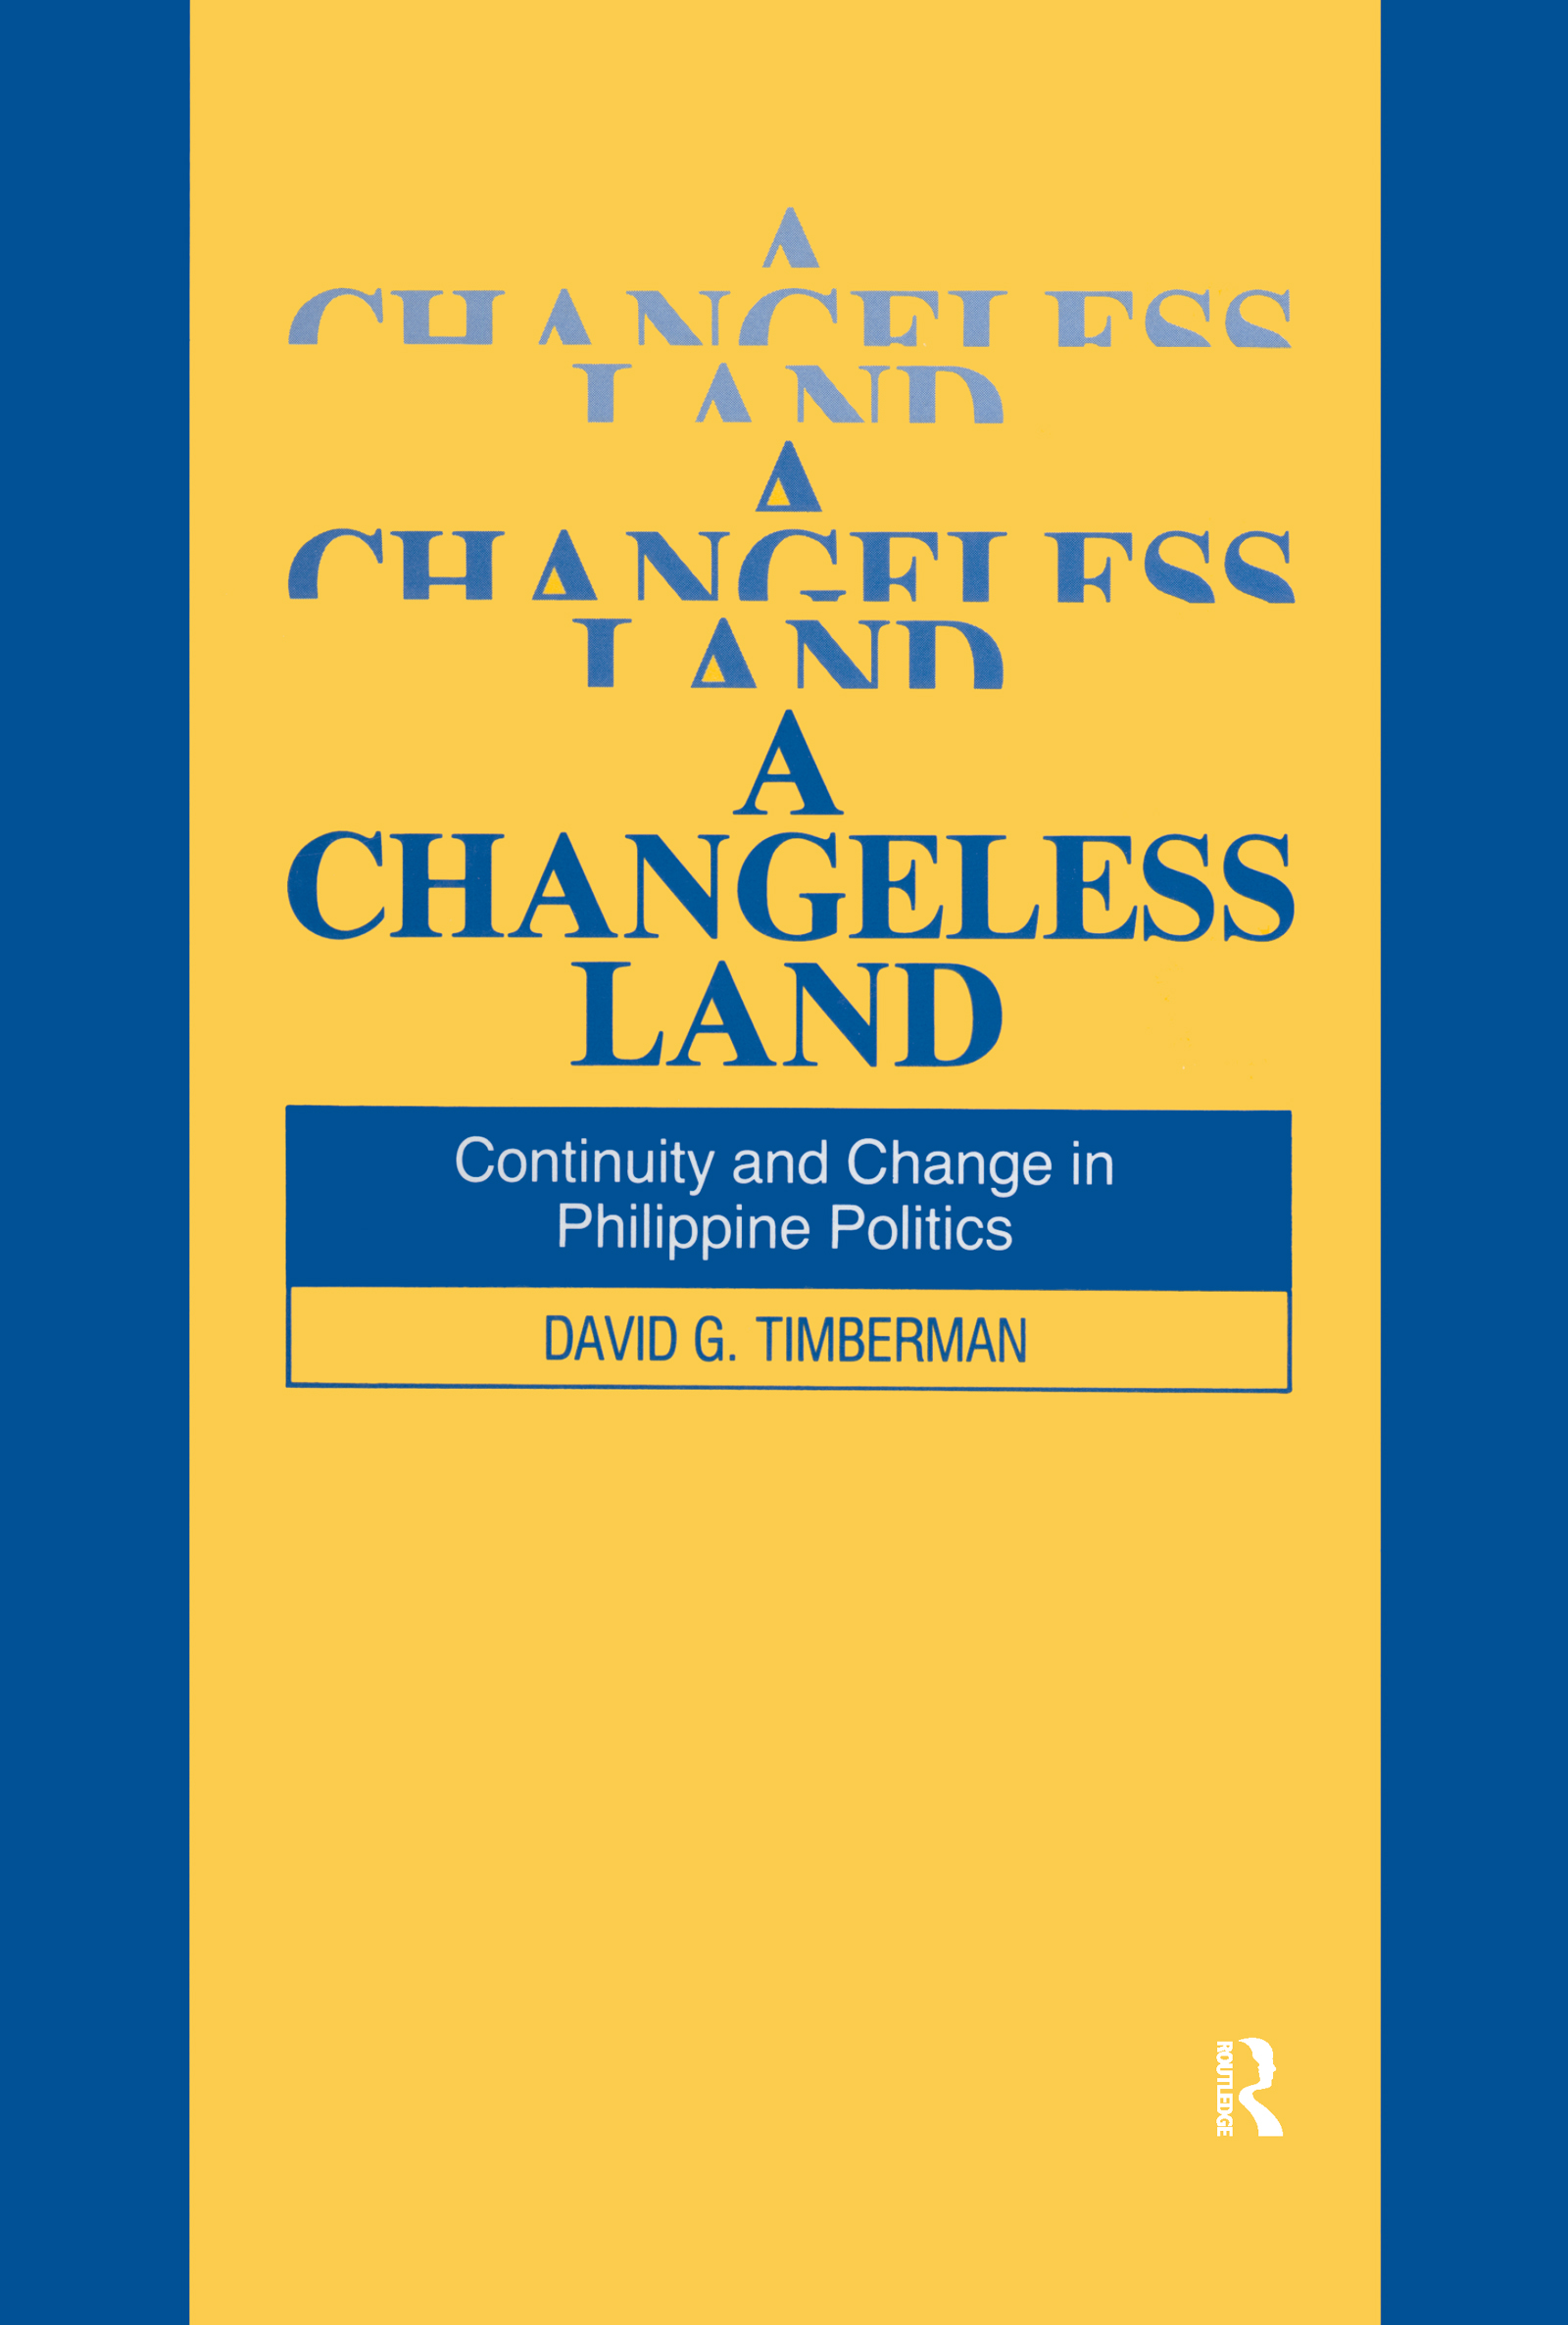 A Changeless Land: Continuity and Change in Philippine Politics: Continuity and Change in Philippine Politics, 1st Edition (Paperback) book cover